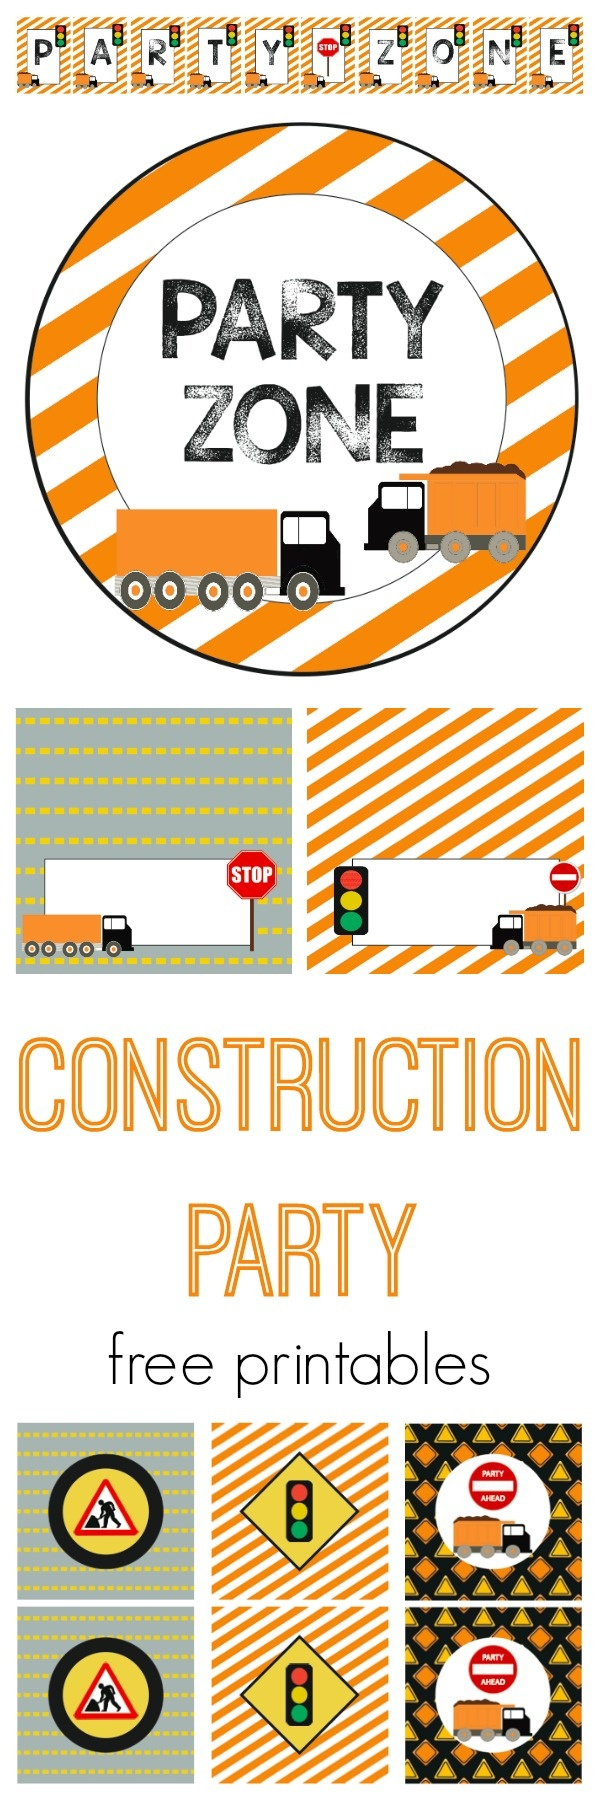 We Heart Parties: Free Printables Construction Party Free Printables - Free Construction Party Printables